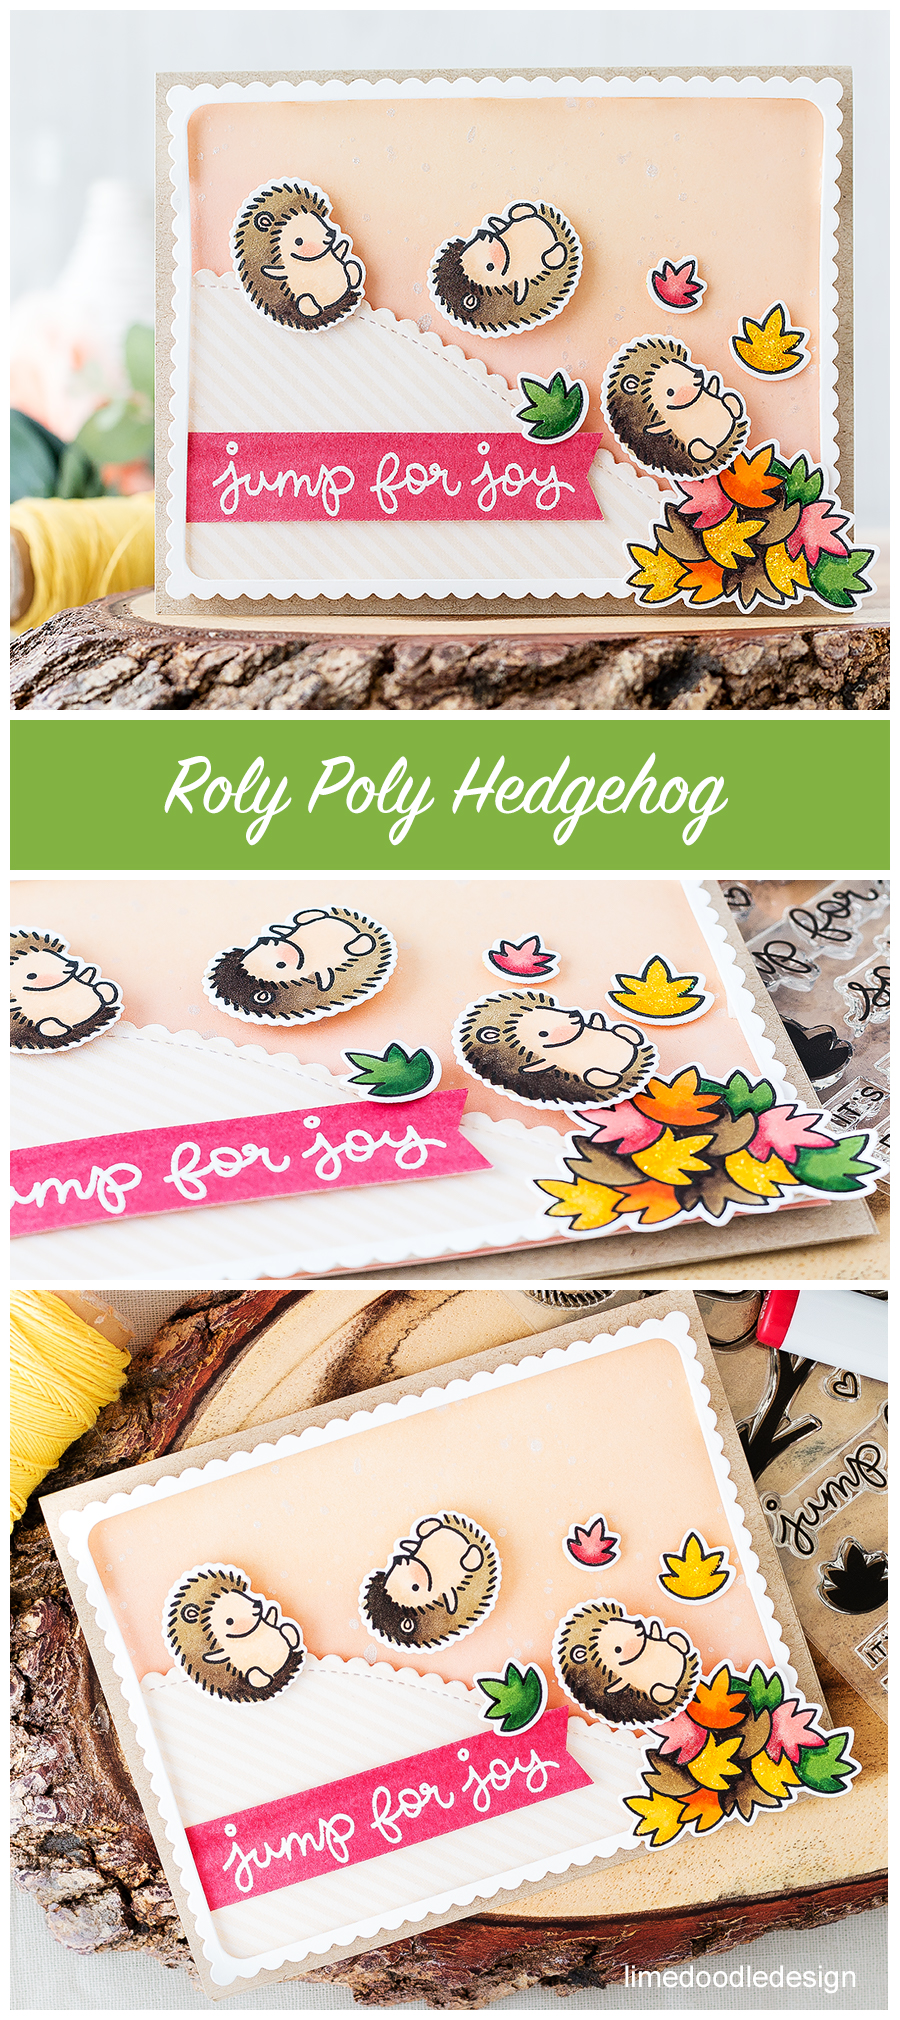 Hedgehog roly polying down a hill. Find out more by clicking on the following link: https://limedoodledesign.com/2016/07/hedgehog-roly-polying-down-a-hill/ fall autumn leaves card